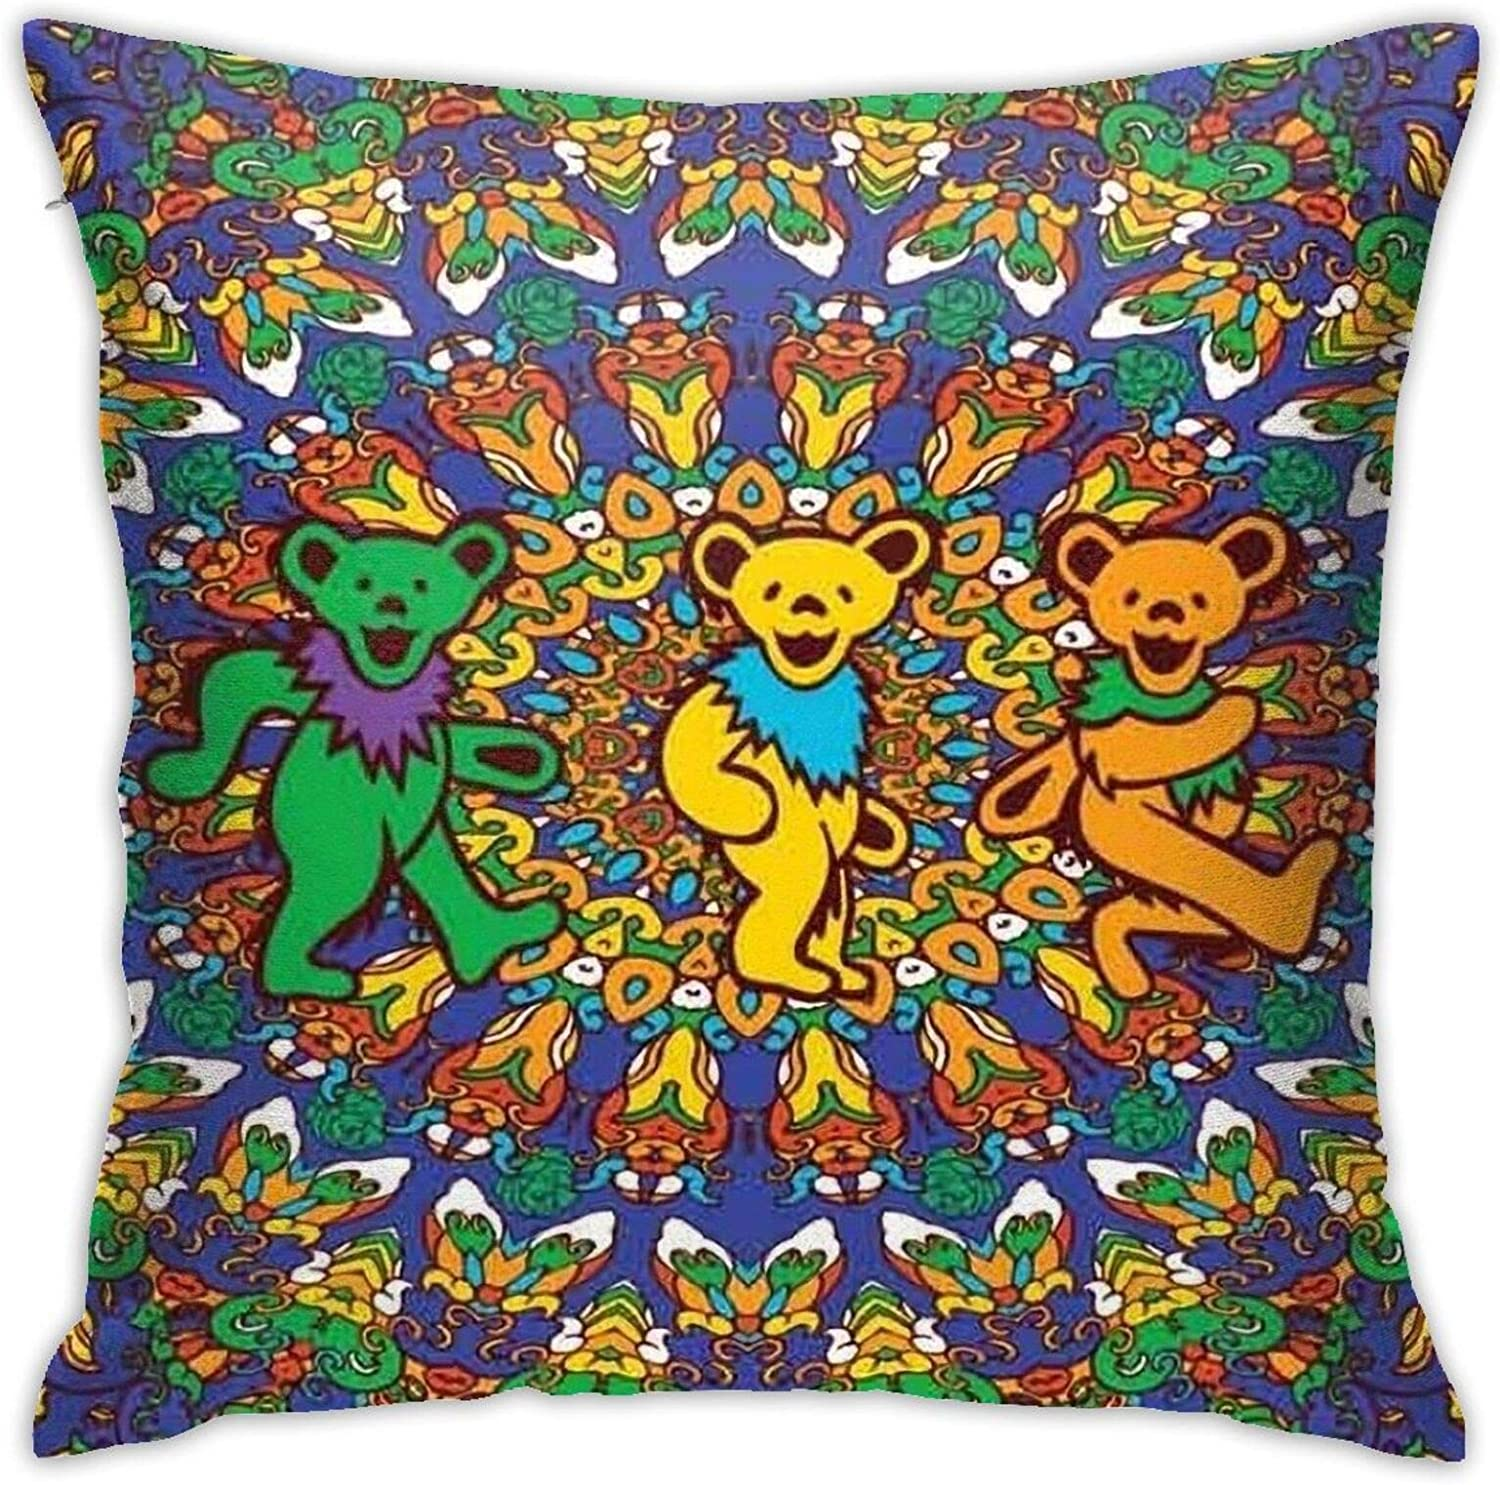 Wmake Daily Street Throw Pillow Covers Grate-ful Dead and Bear,Pillow Cases Decorative Soft Pillowcase Cushion Protecter 18